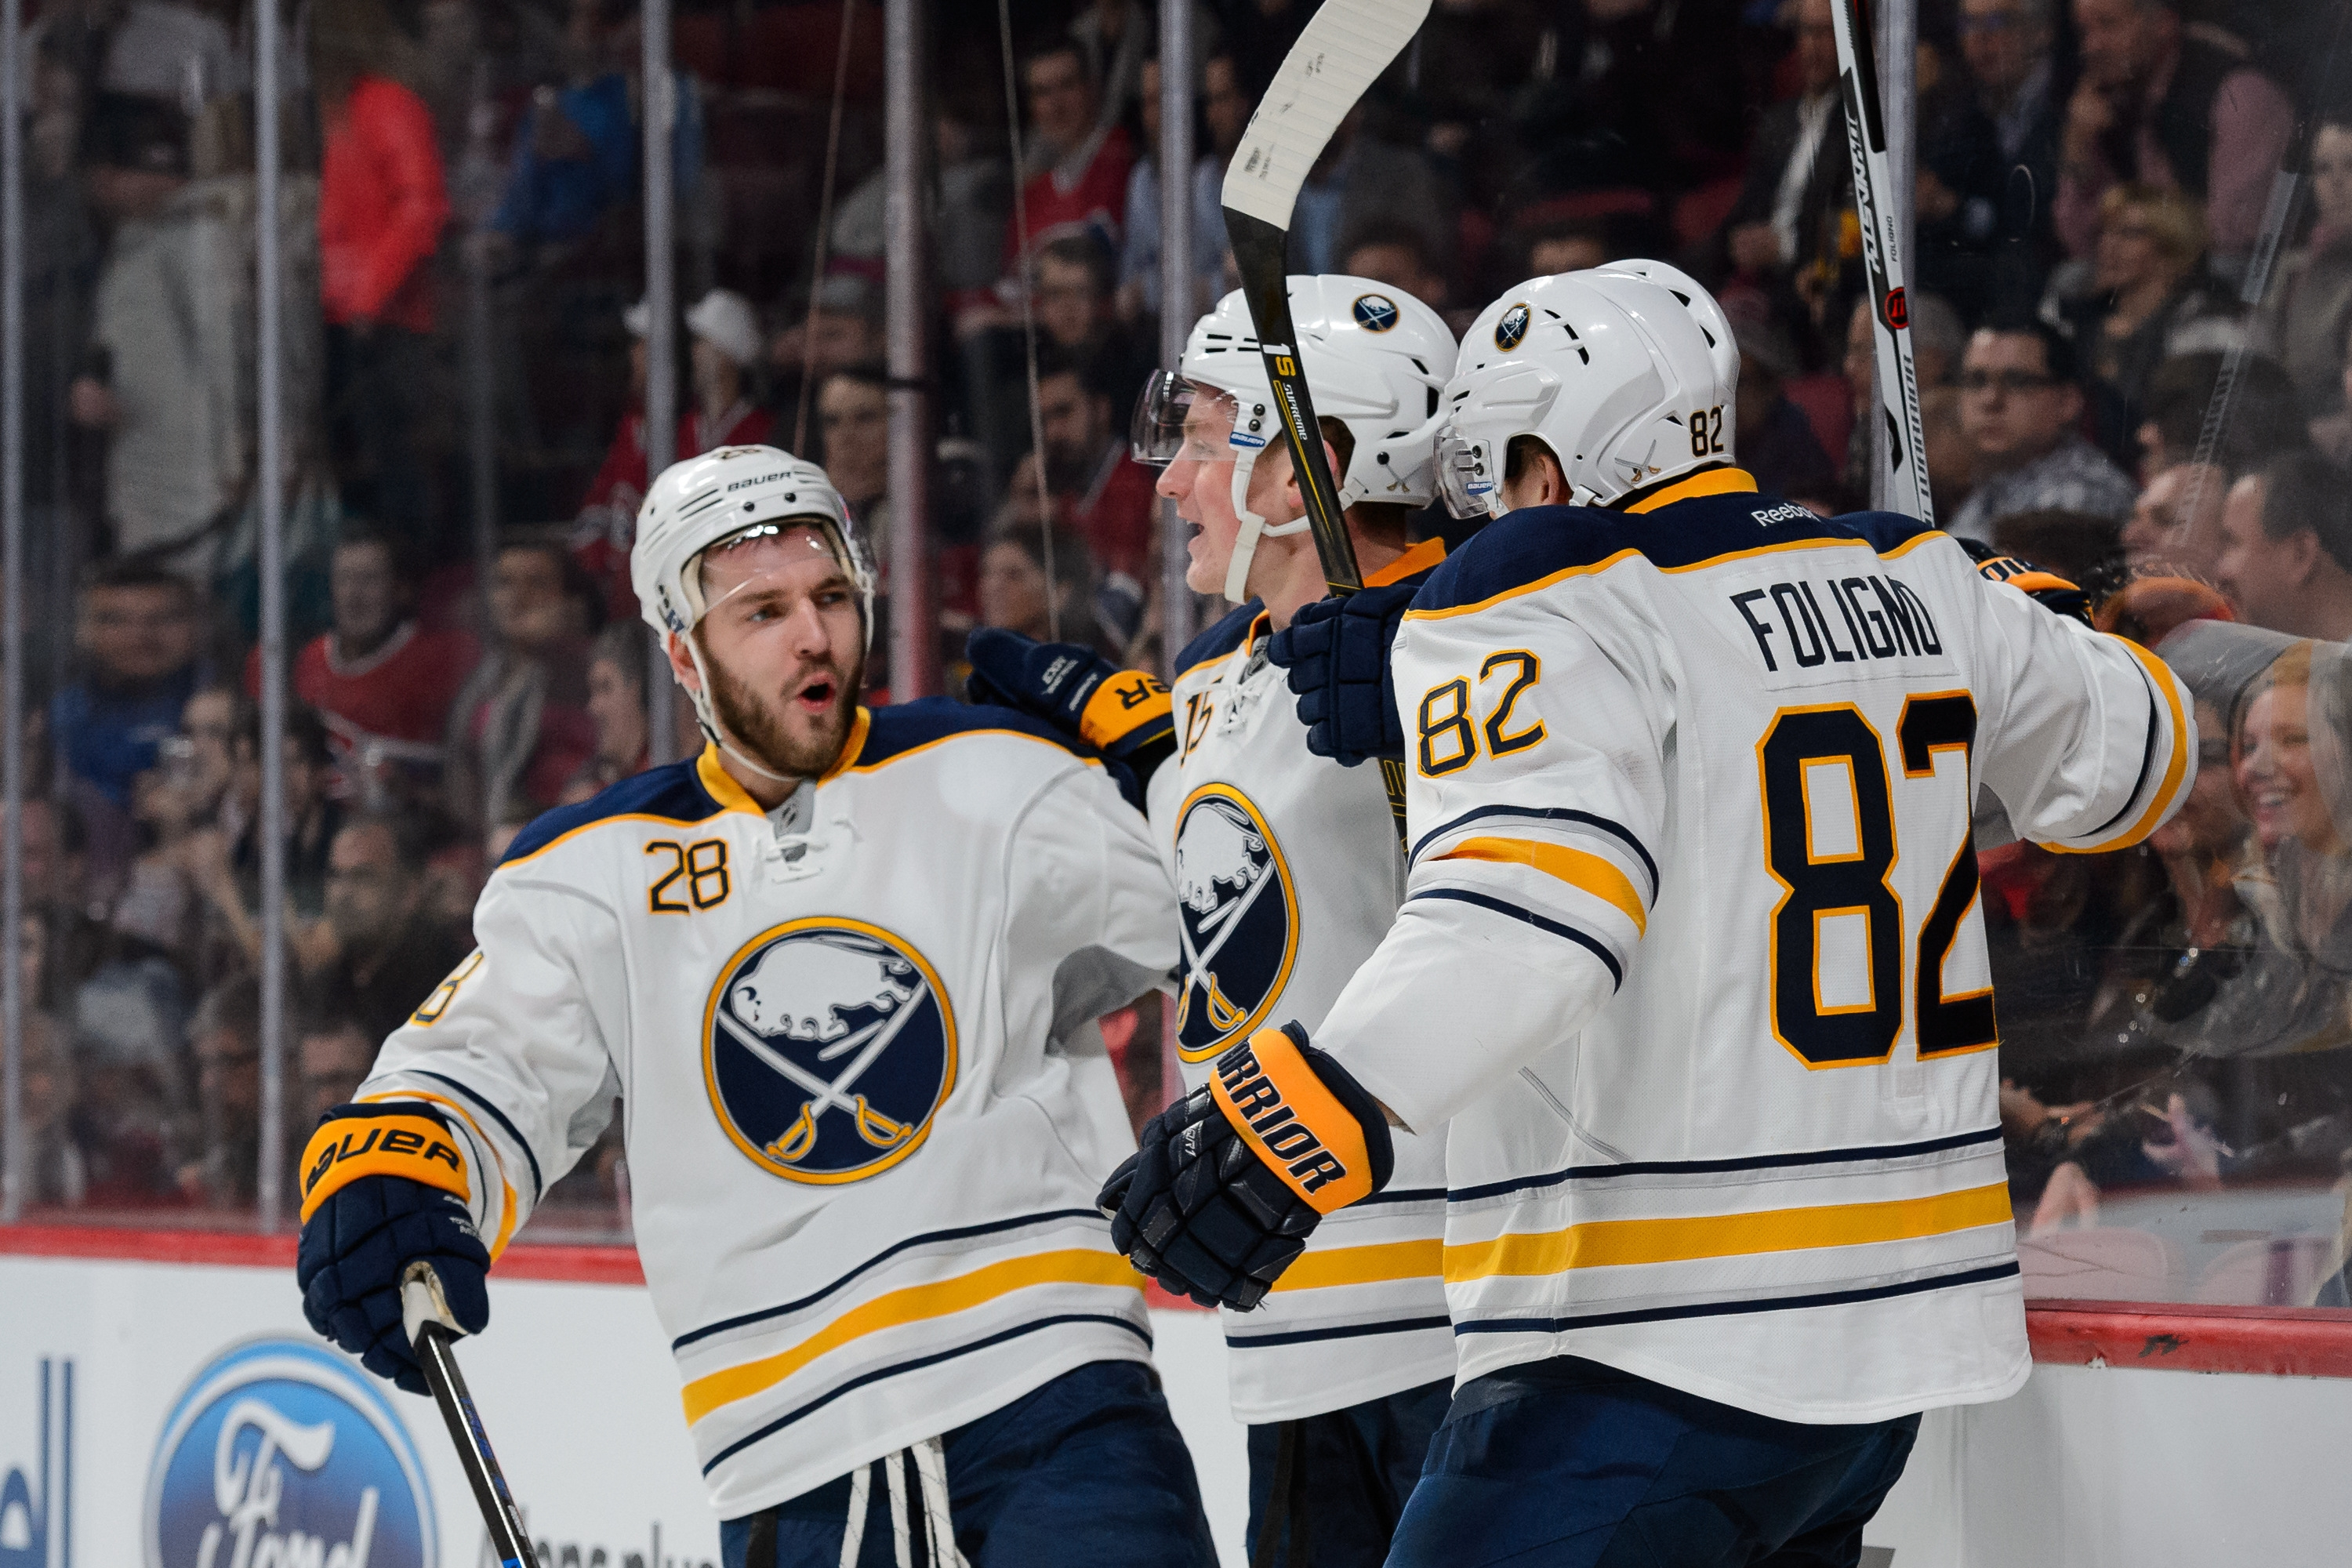 Marcus Foligno (82) practiced fully Monday and expects to play Tuesday against the Florida Panthers. Meanwhile linemate Zemgus Girgensons (28) missed practice with a lower body injury.